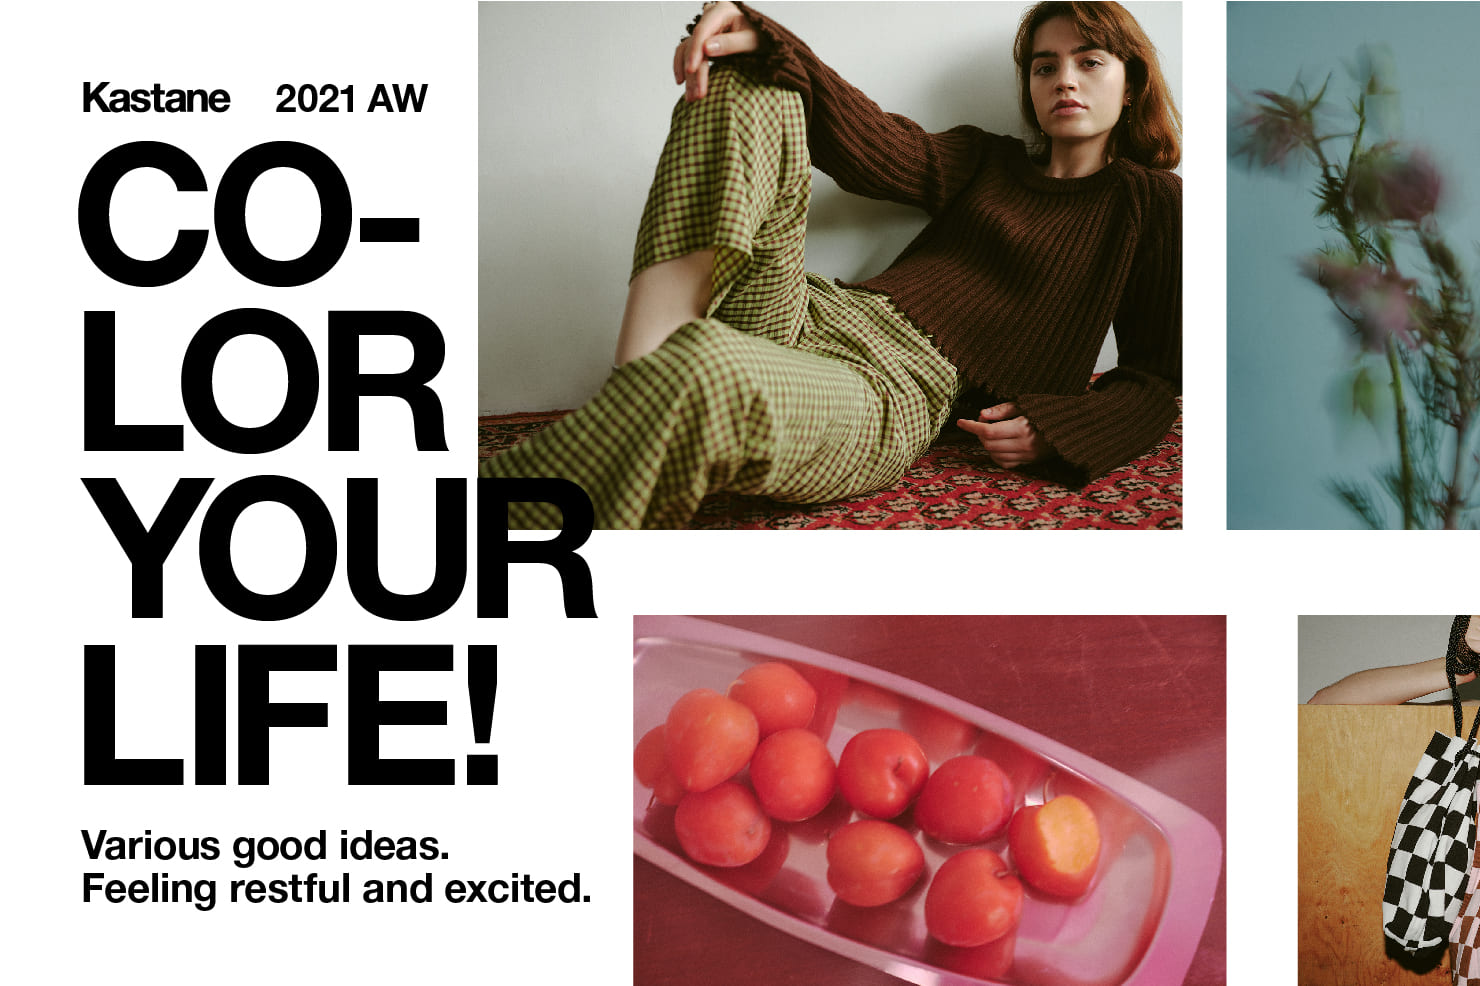 Kastane 2021A/W 「Various good ideas. Feeling restful and excited.」